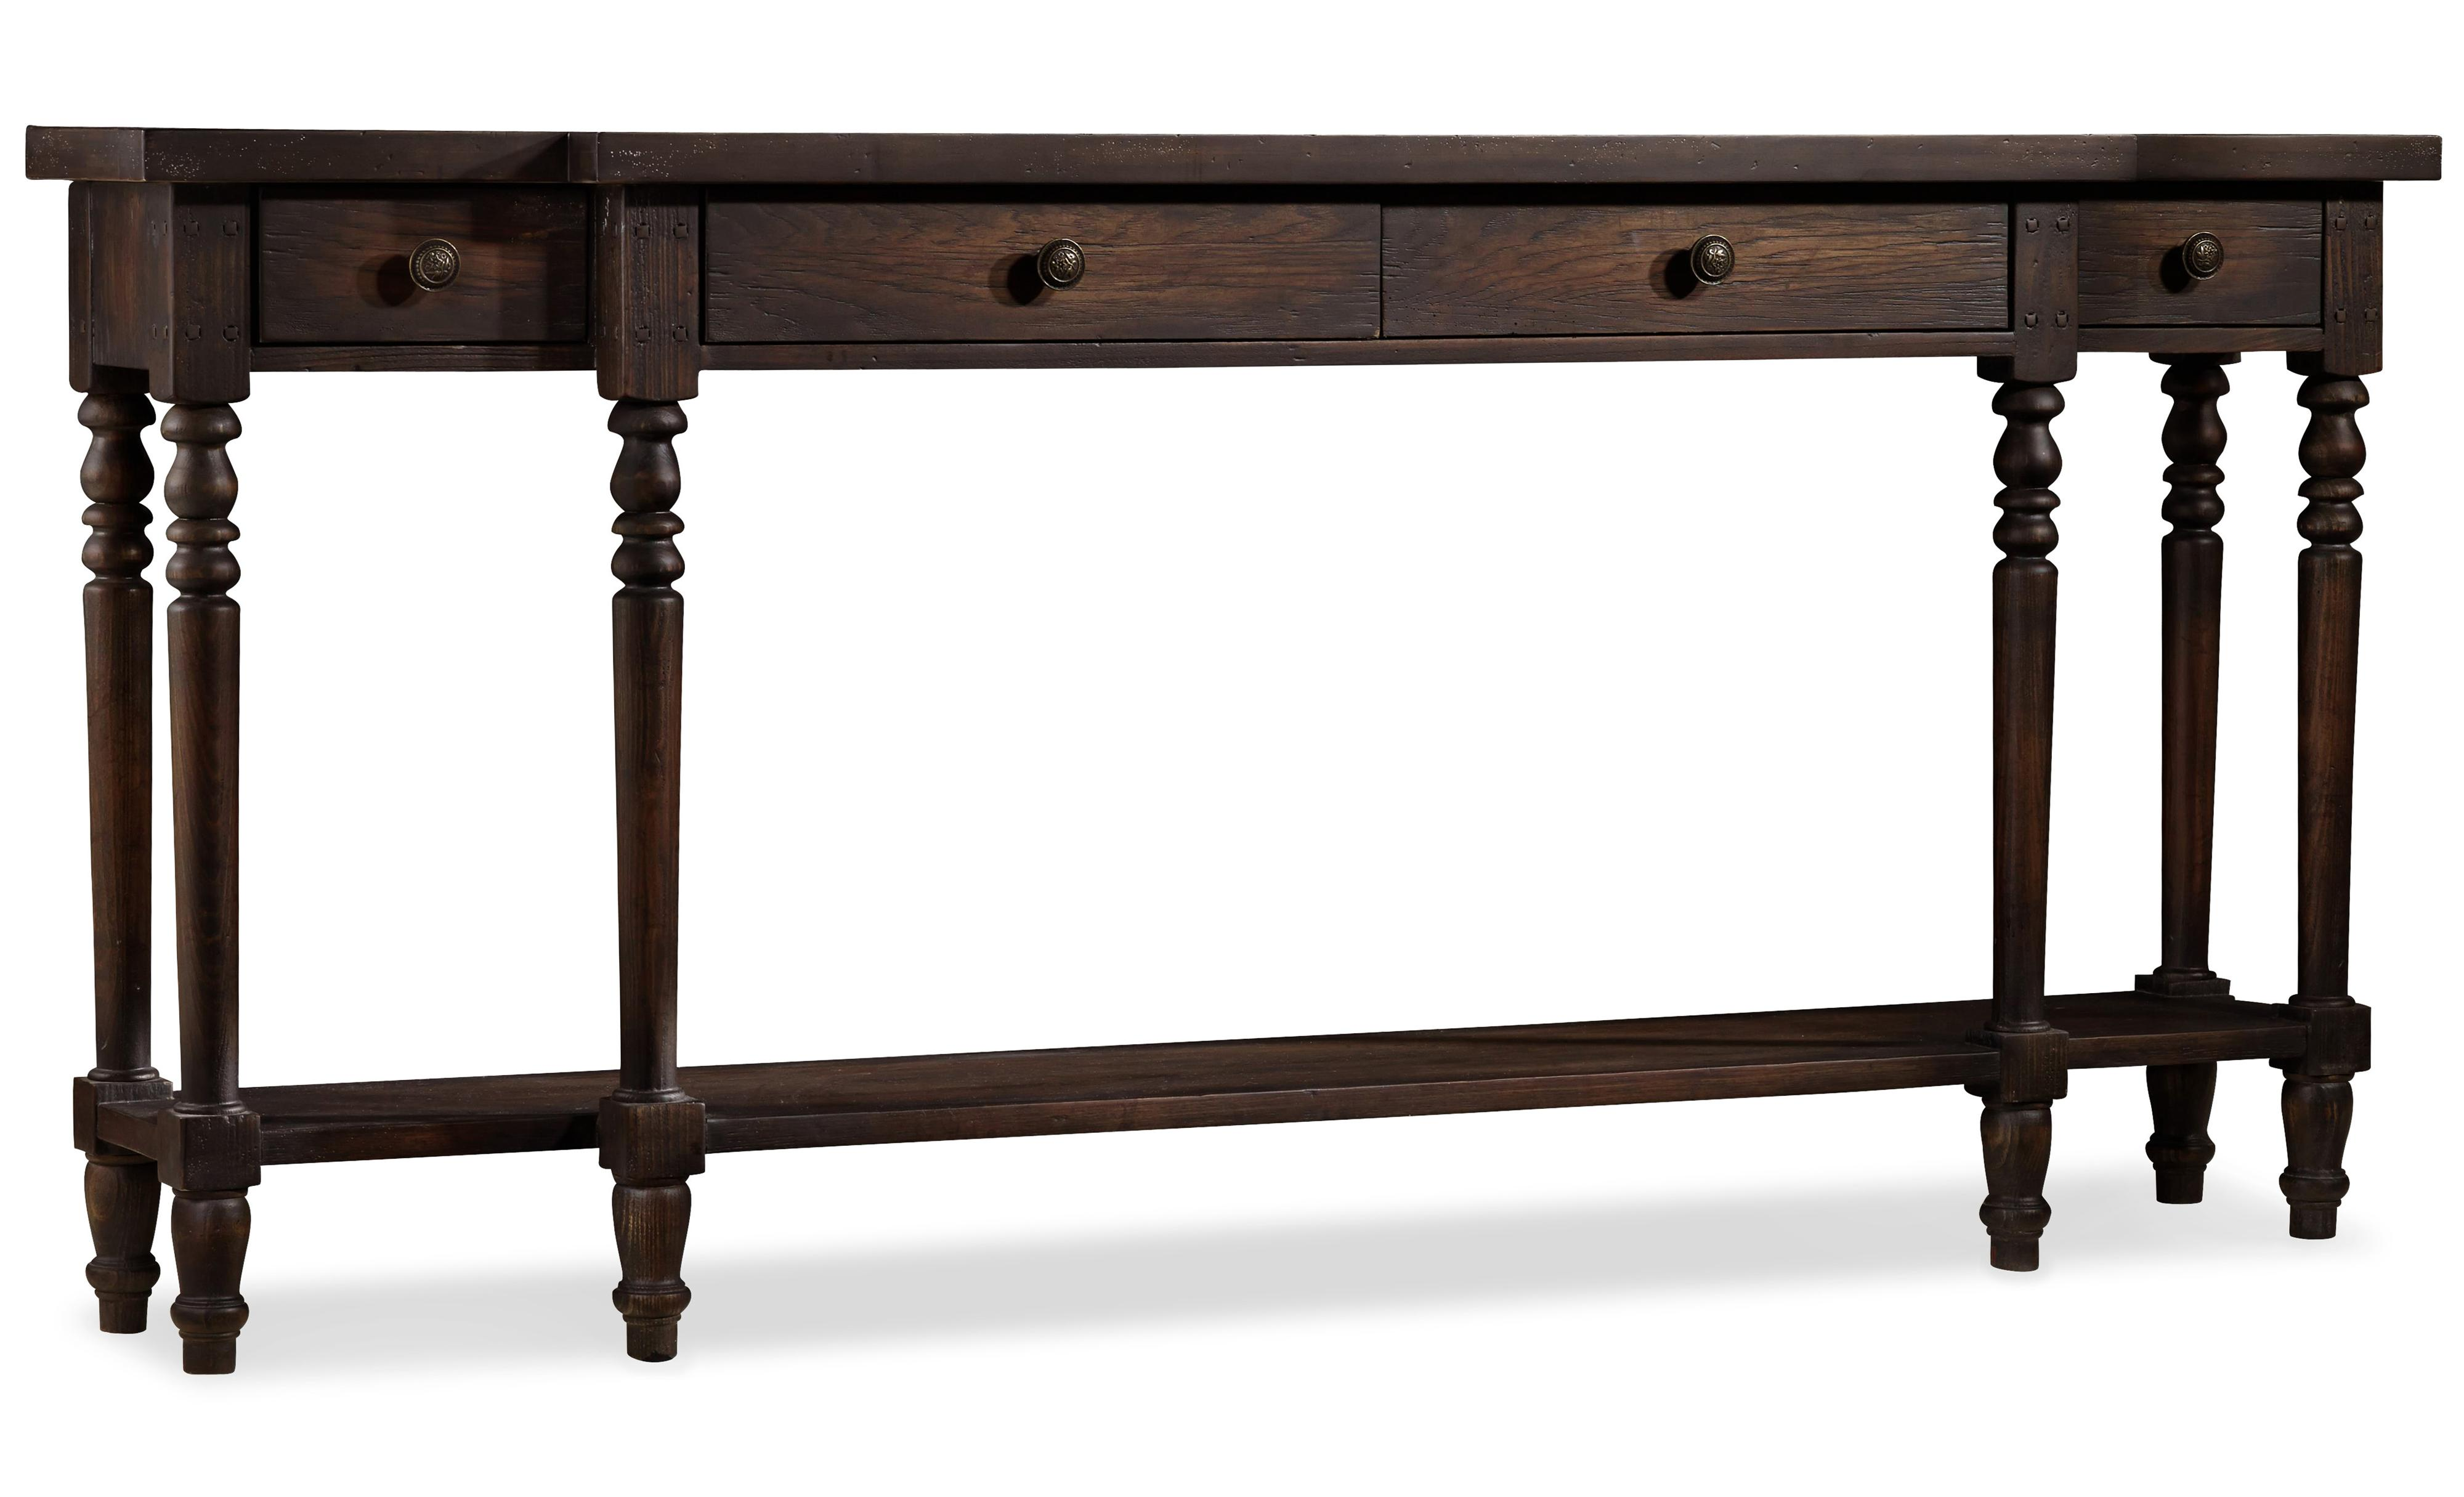 Hooker Furniture DaValle Console Table - Item Number: 5165-85003